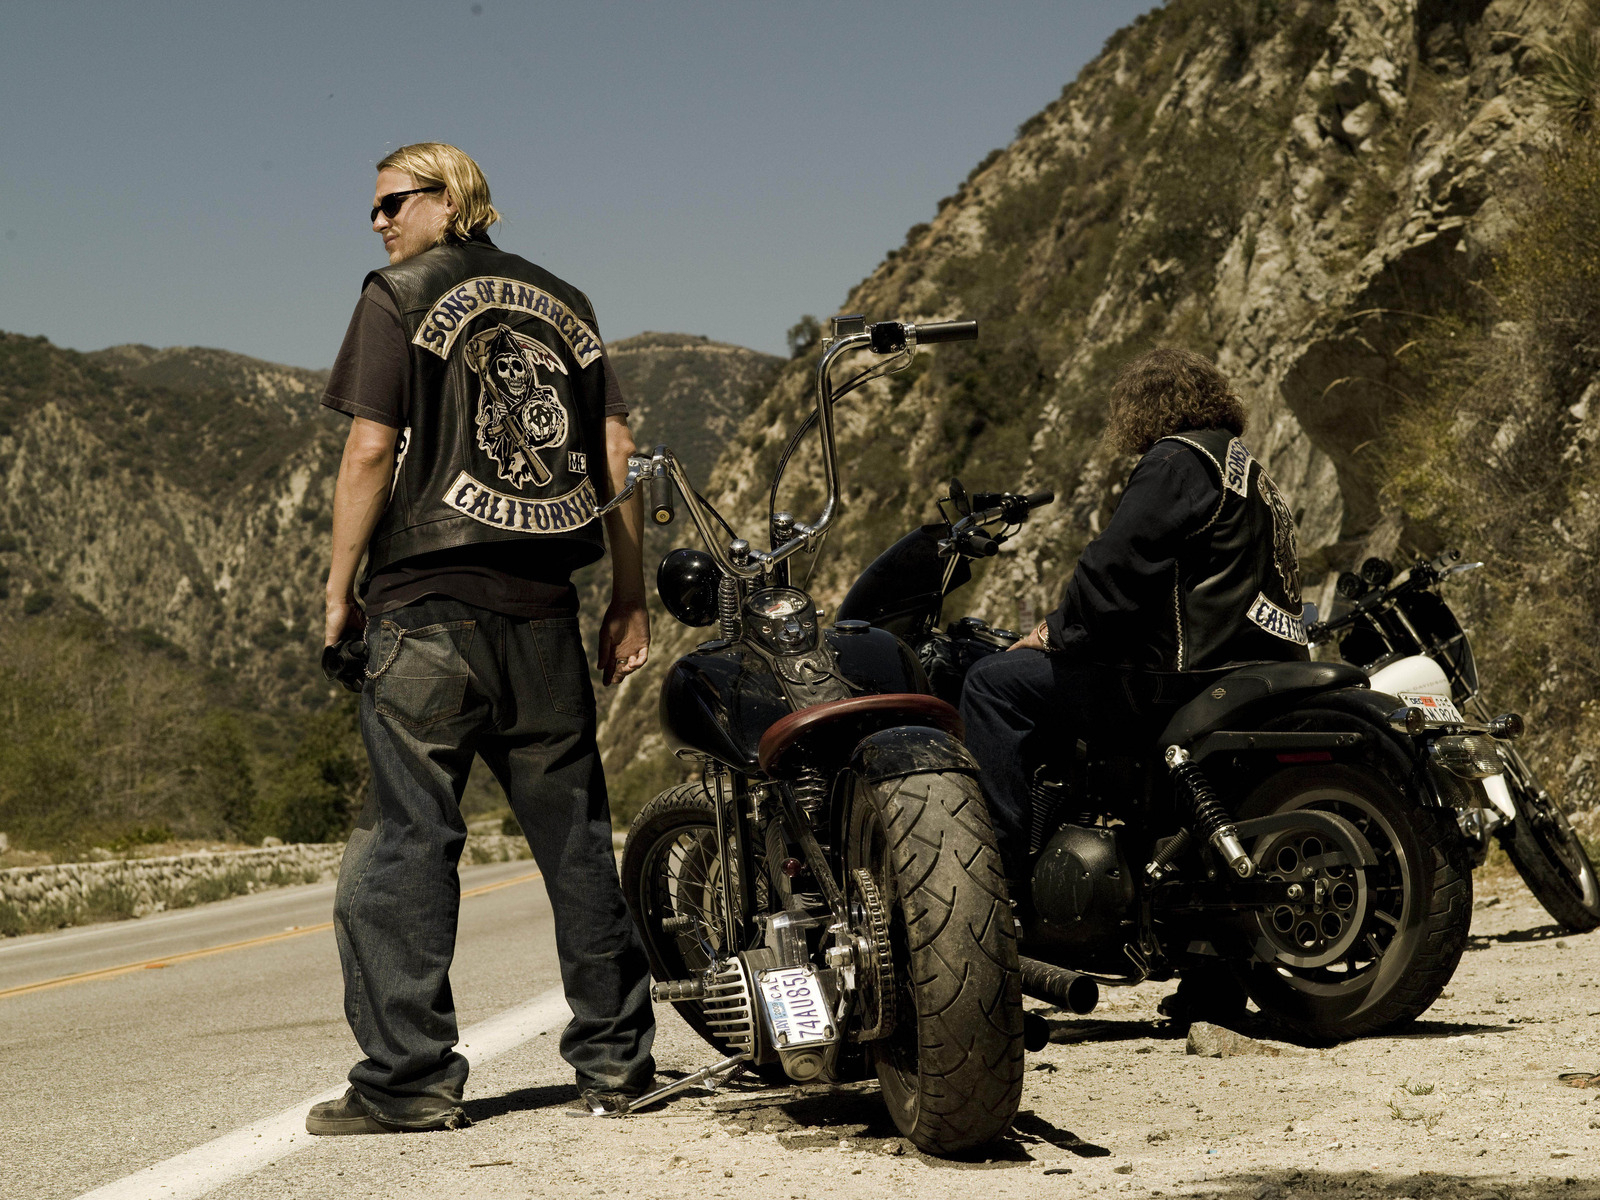 Bikes Ridden In Sons Of Anarchy The Bikes Sons of Anarchy